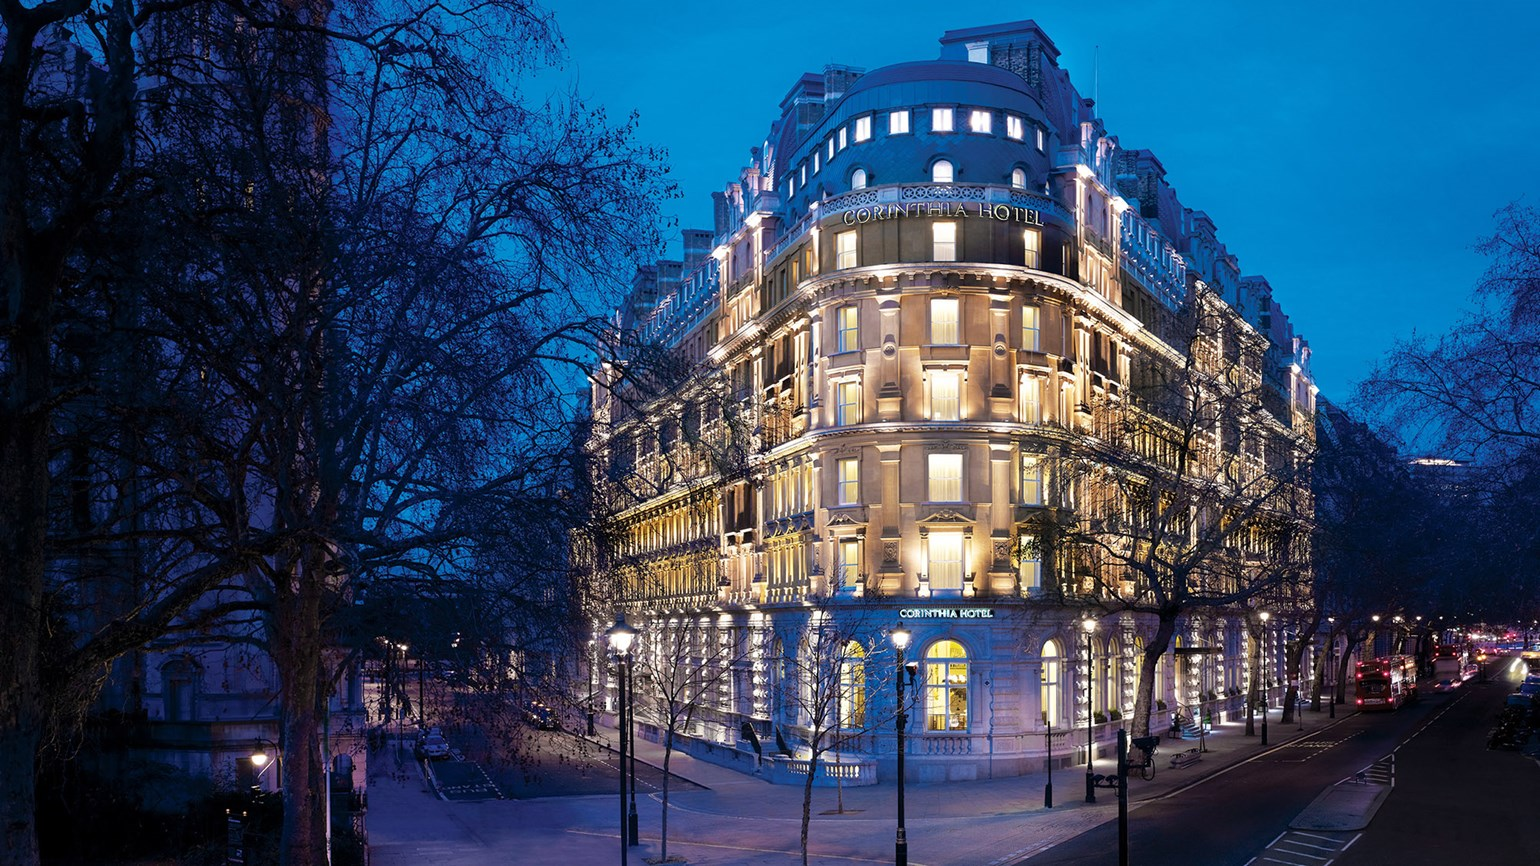 Corinthia Hotel London creates 'Love in Luxury' package for Valentine's Day stays